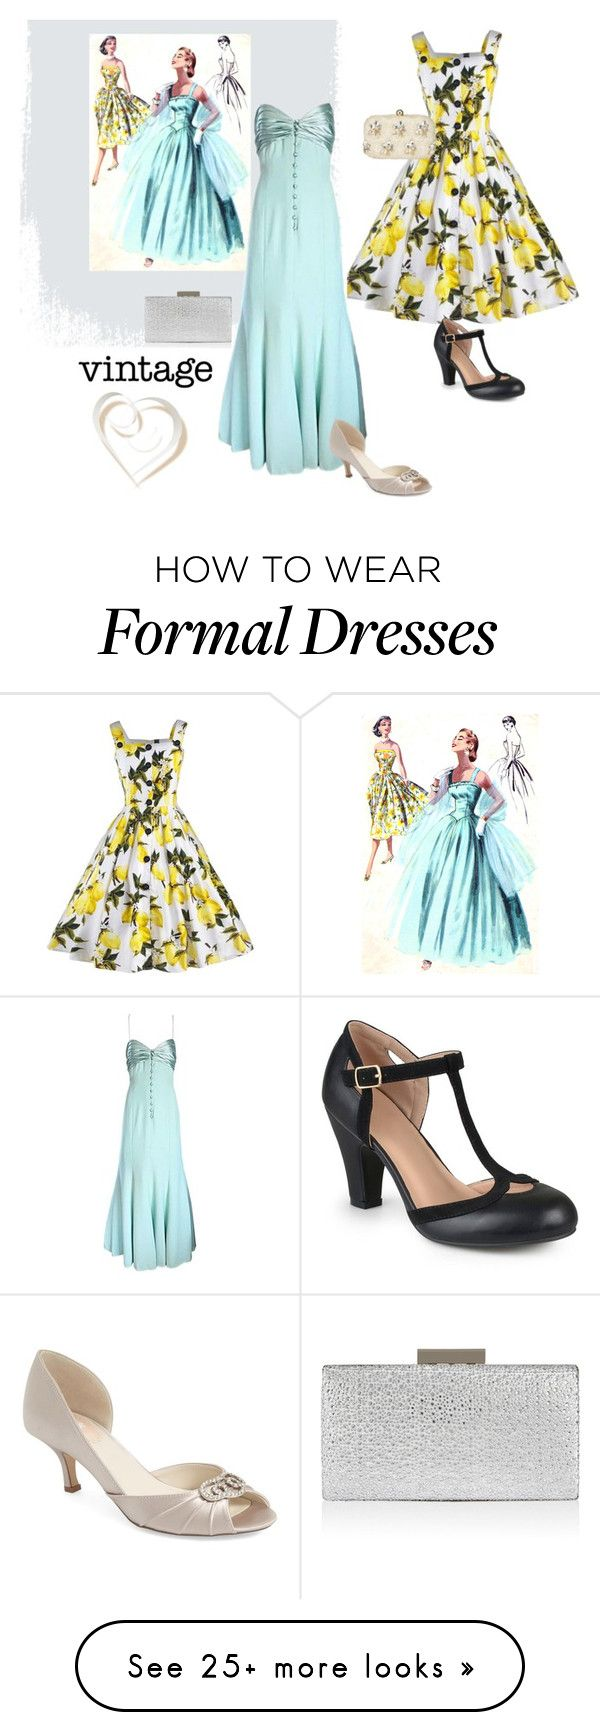 """""""vintage dresses"""" by summer1967 on Polyvore featuring Valentino, Pink Paradox London, Journee Collection, John Lewis, Monsoon and vintage"""